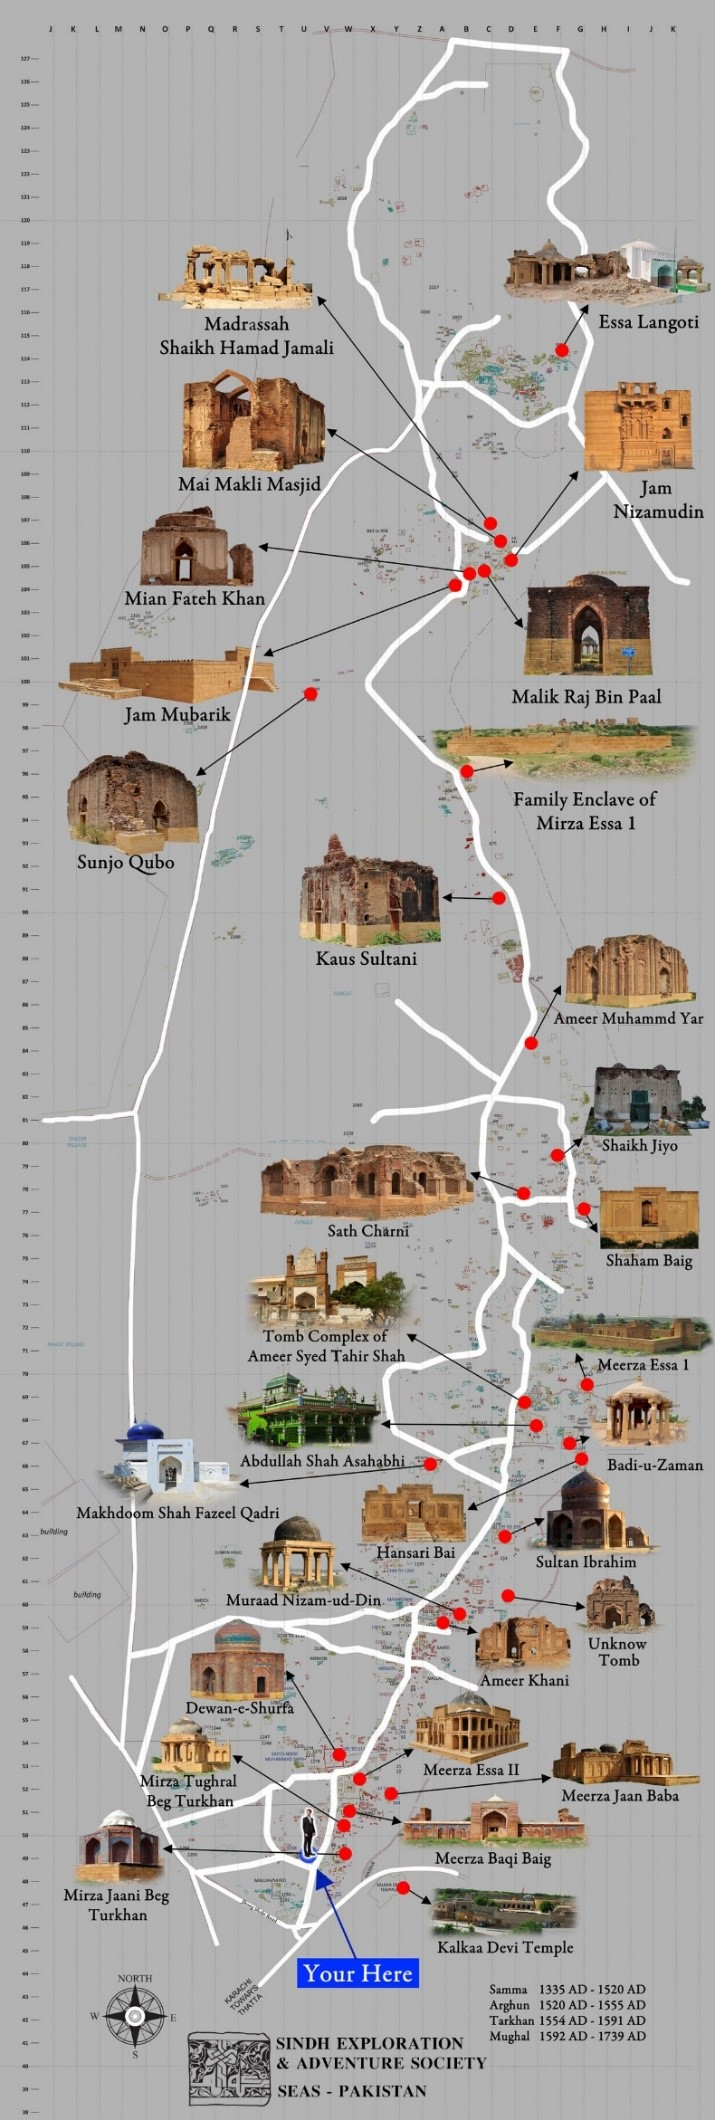 Makli Site Map contained some of its important structures